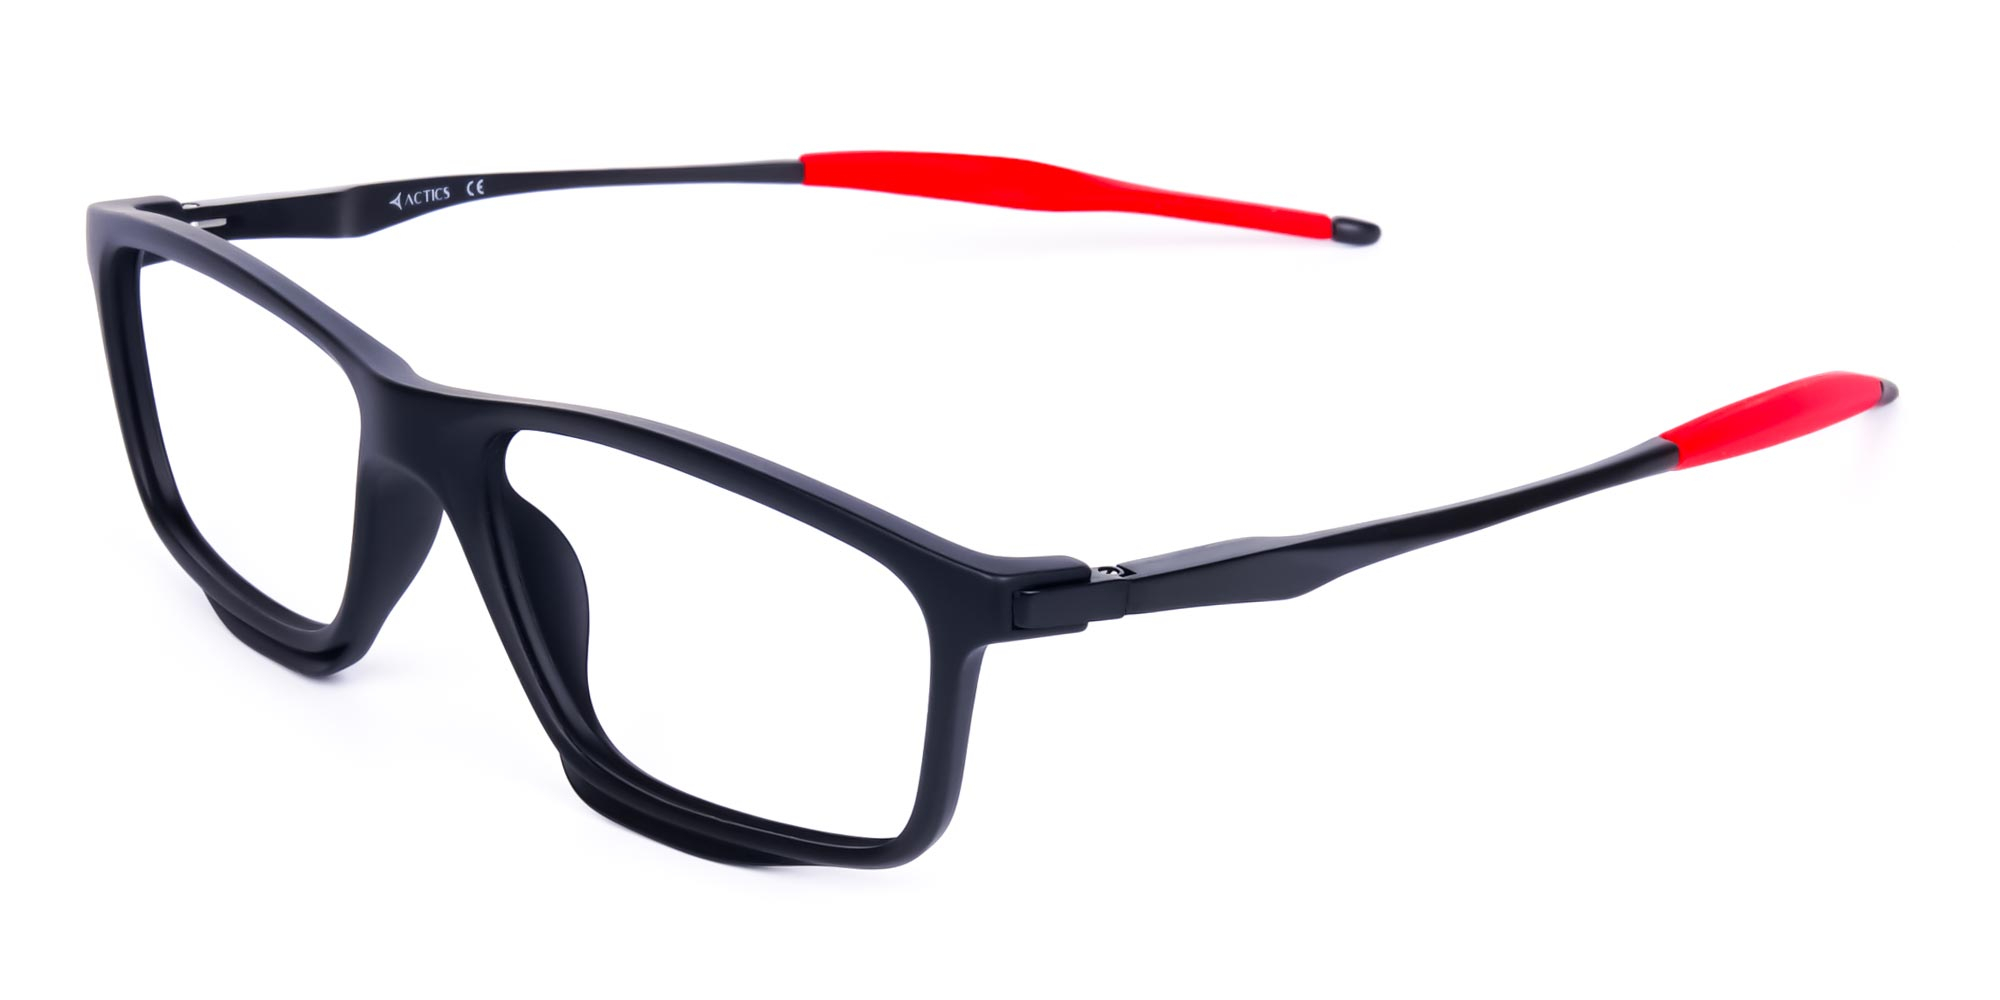 cycling-glasses-for-small-faces.html